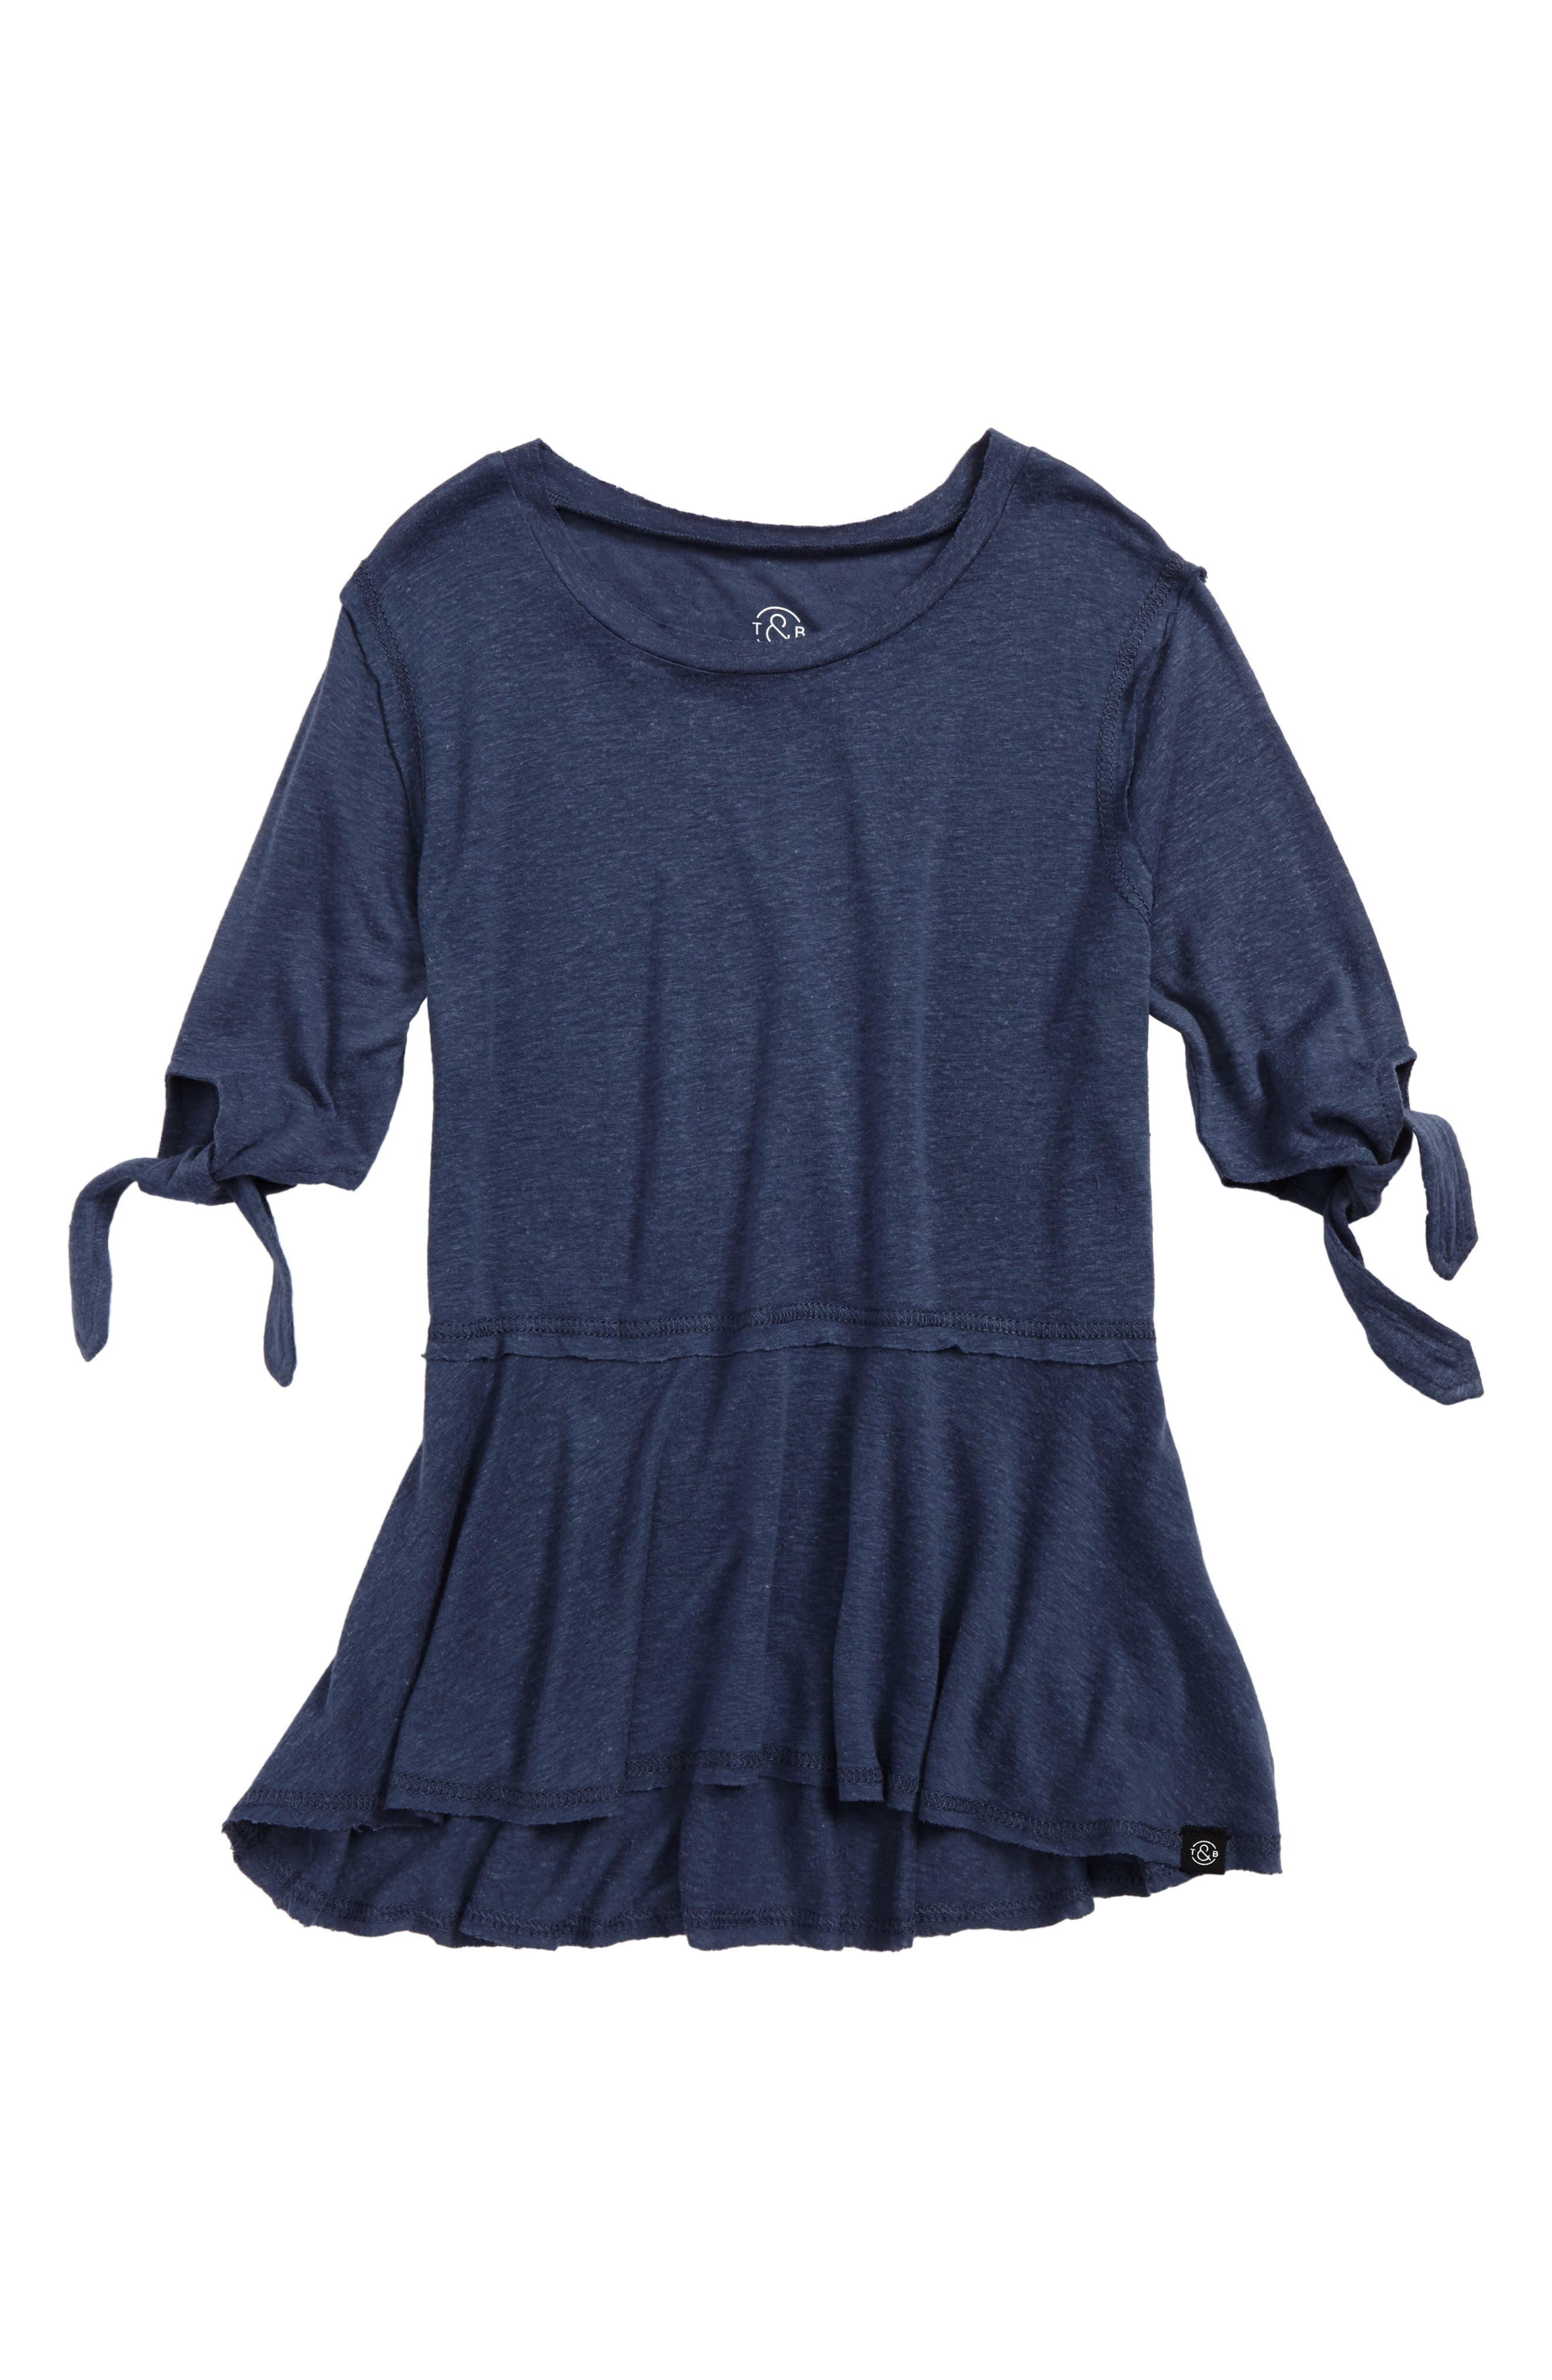 Main Image - Treasure & Bong Tie Sleeve Peplum Top (Big Girls)